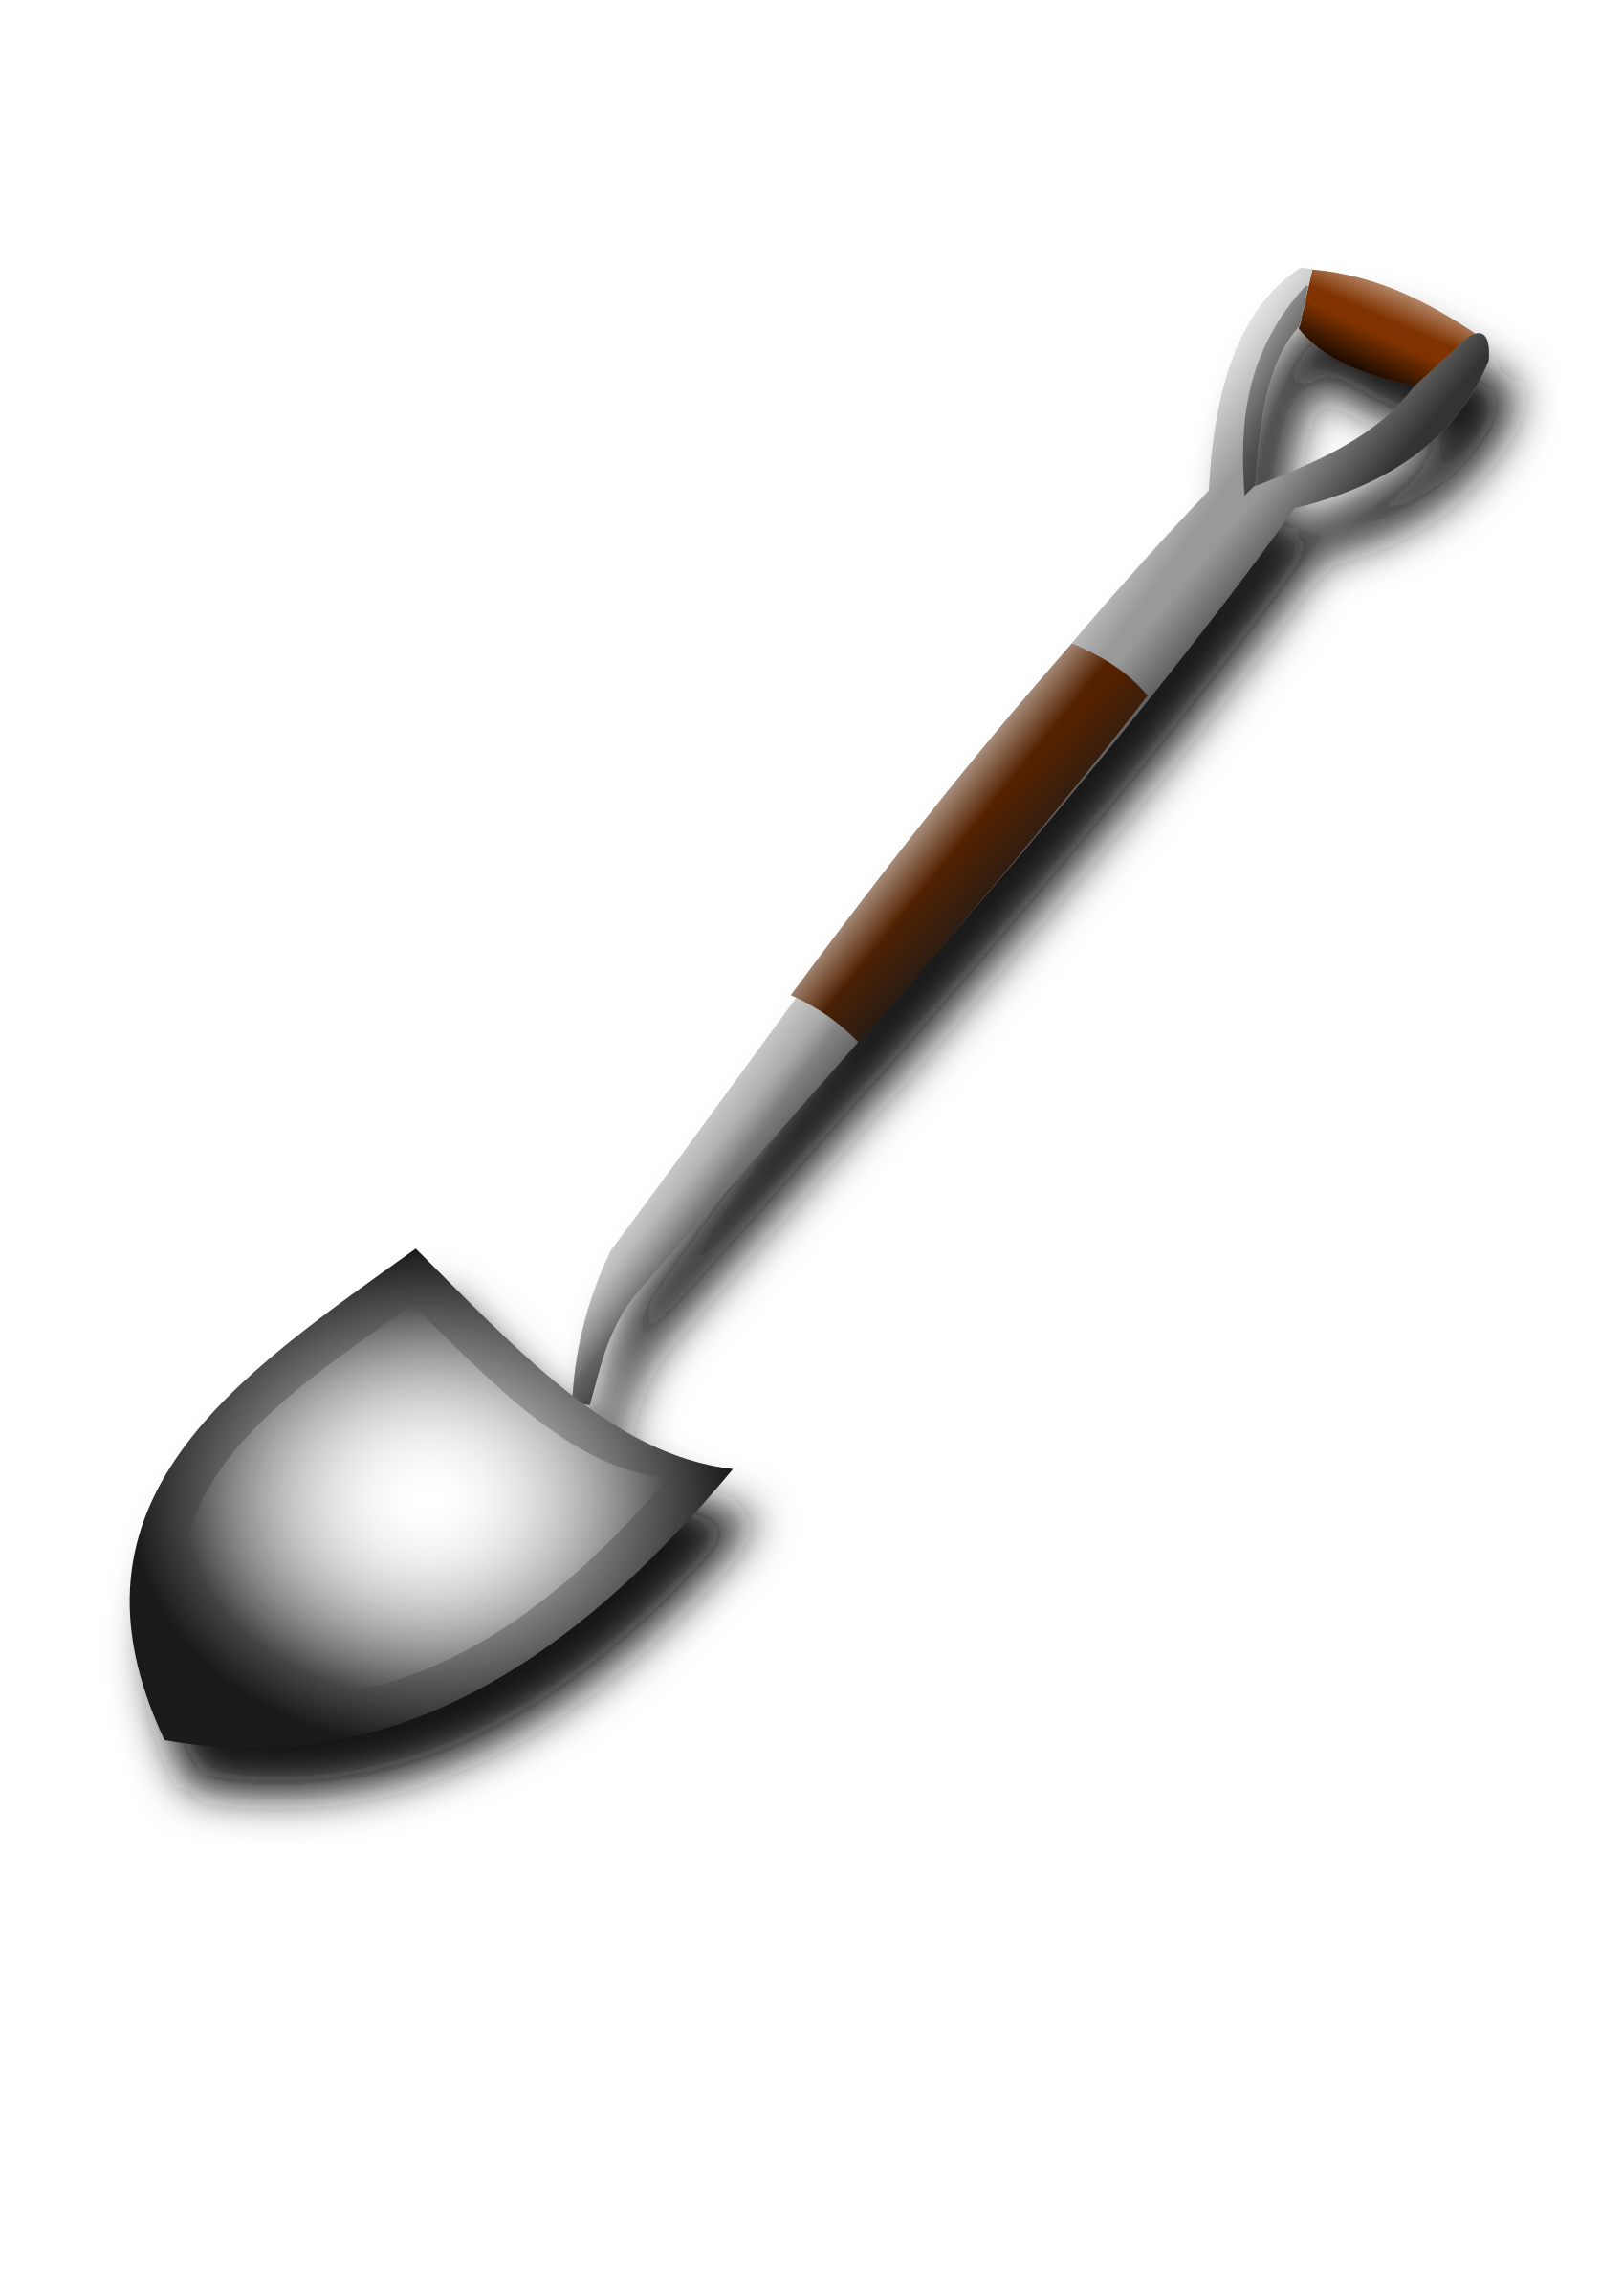 shovel by hatalar205